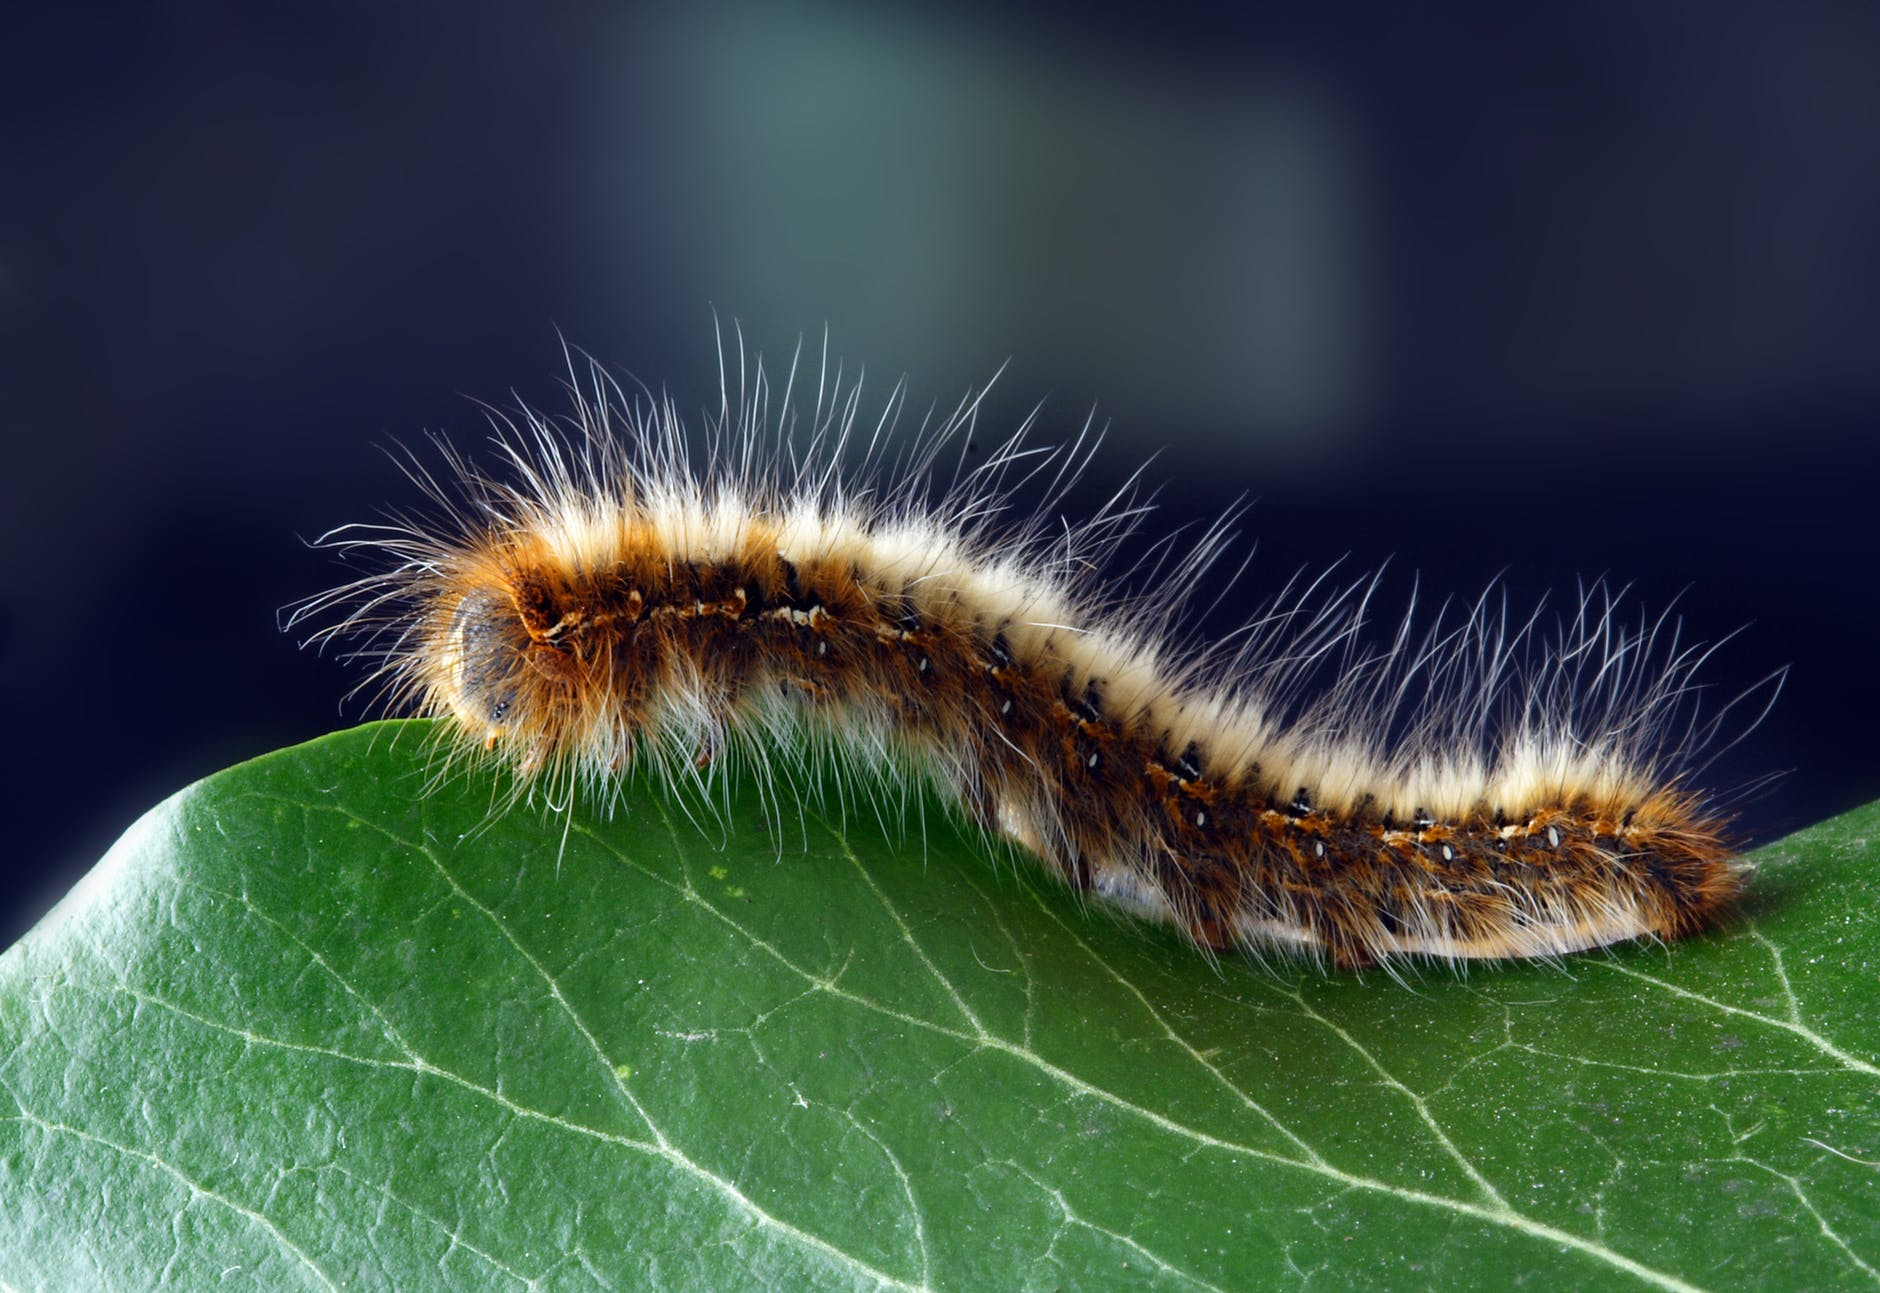 caterpillar close up hairy insect